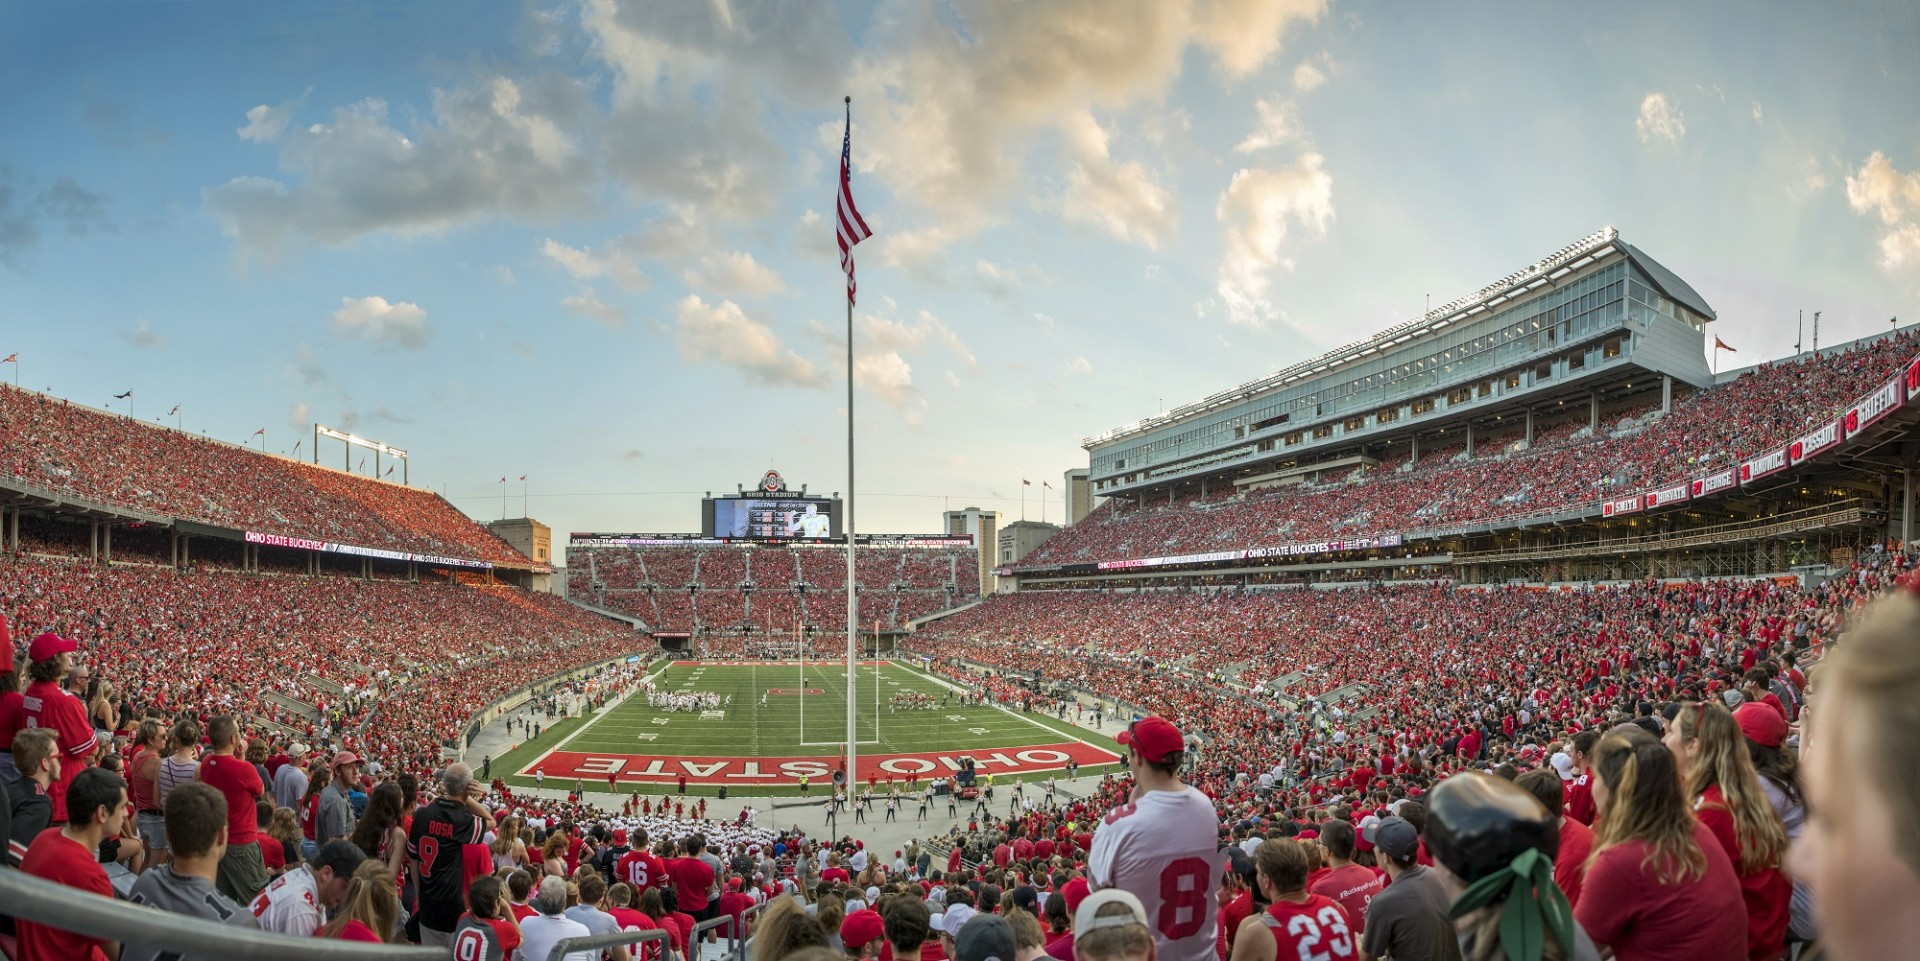 The Ohio State Buckeyes this week announced a home-and-home series with the Alabama Crimson Tide, with games to be played in Columbus in 2027 and Tuscaloosa 2028.